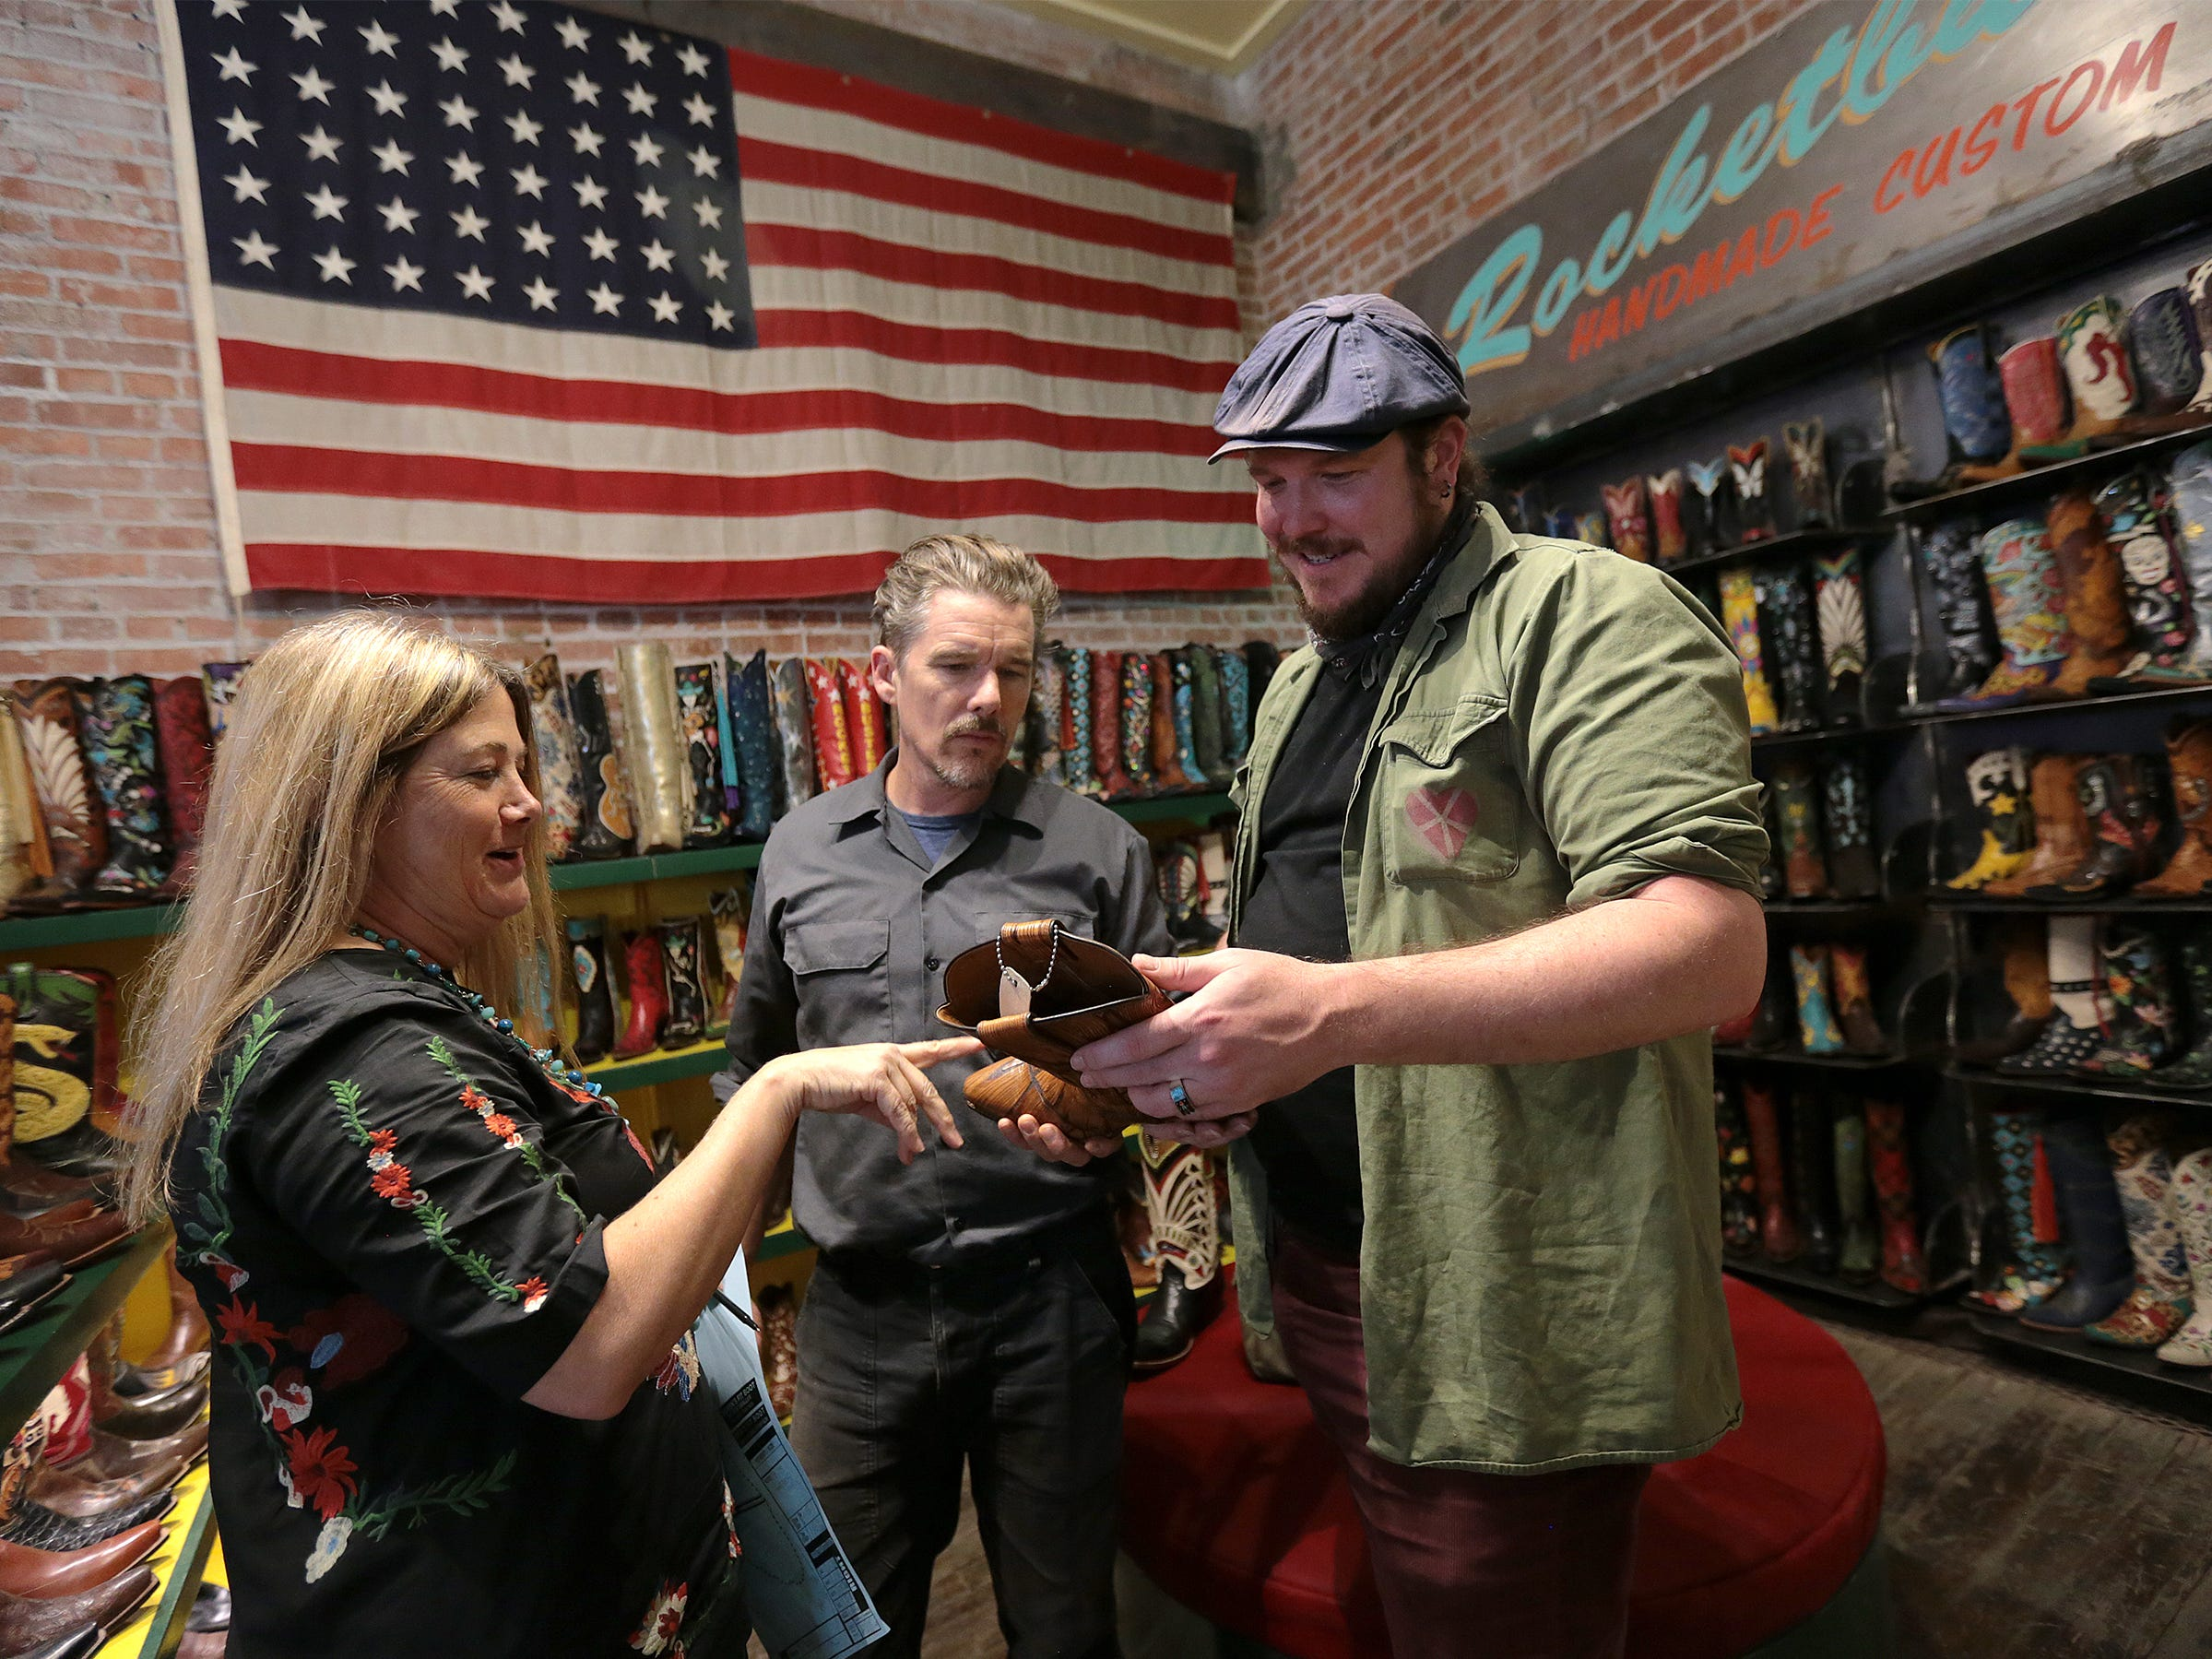 Rocketbuster Boots owner Nevena Christi shows a pair of custom boots to Ethan Hawke and Ben Dickey as they tour the shop in downtown El Paso Tuesday.